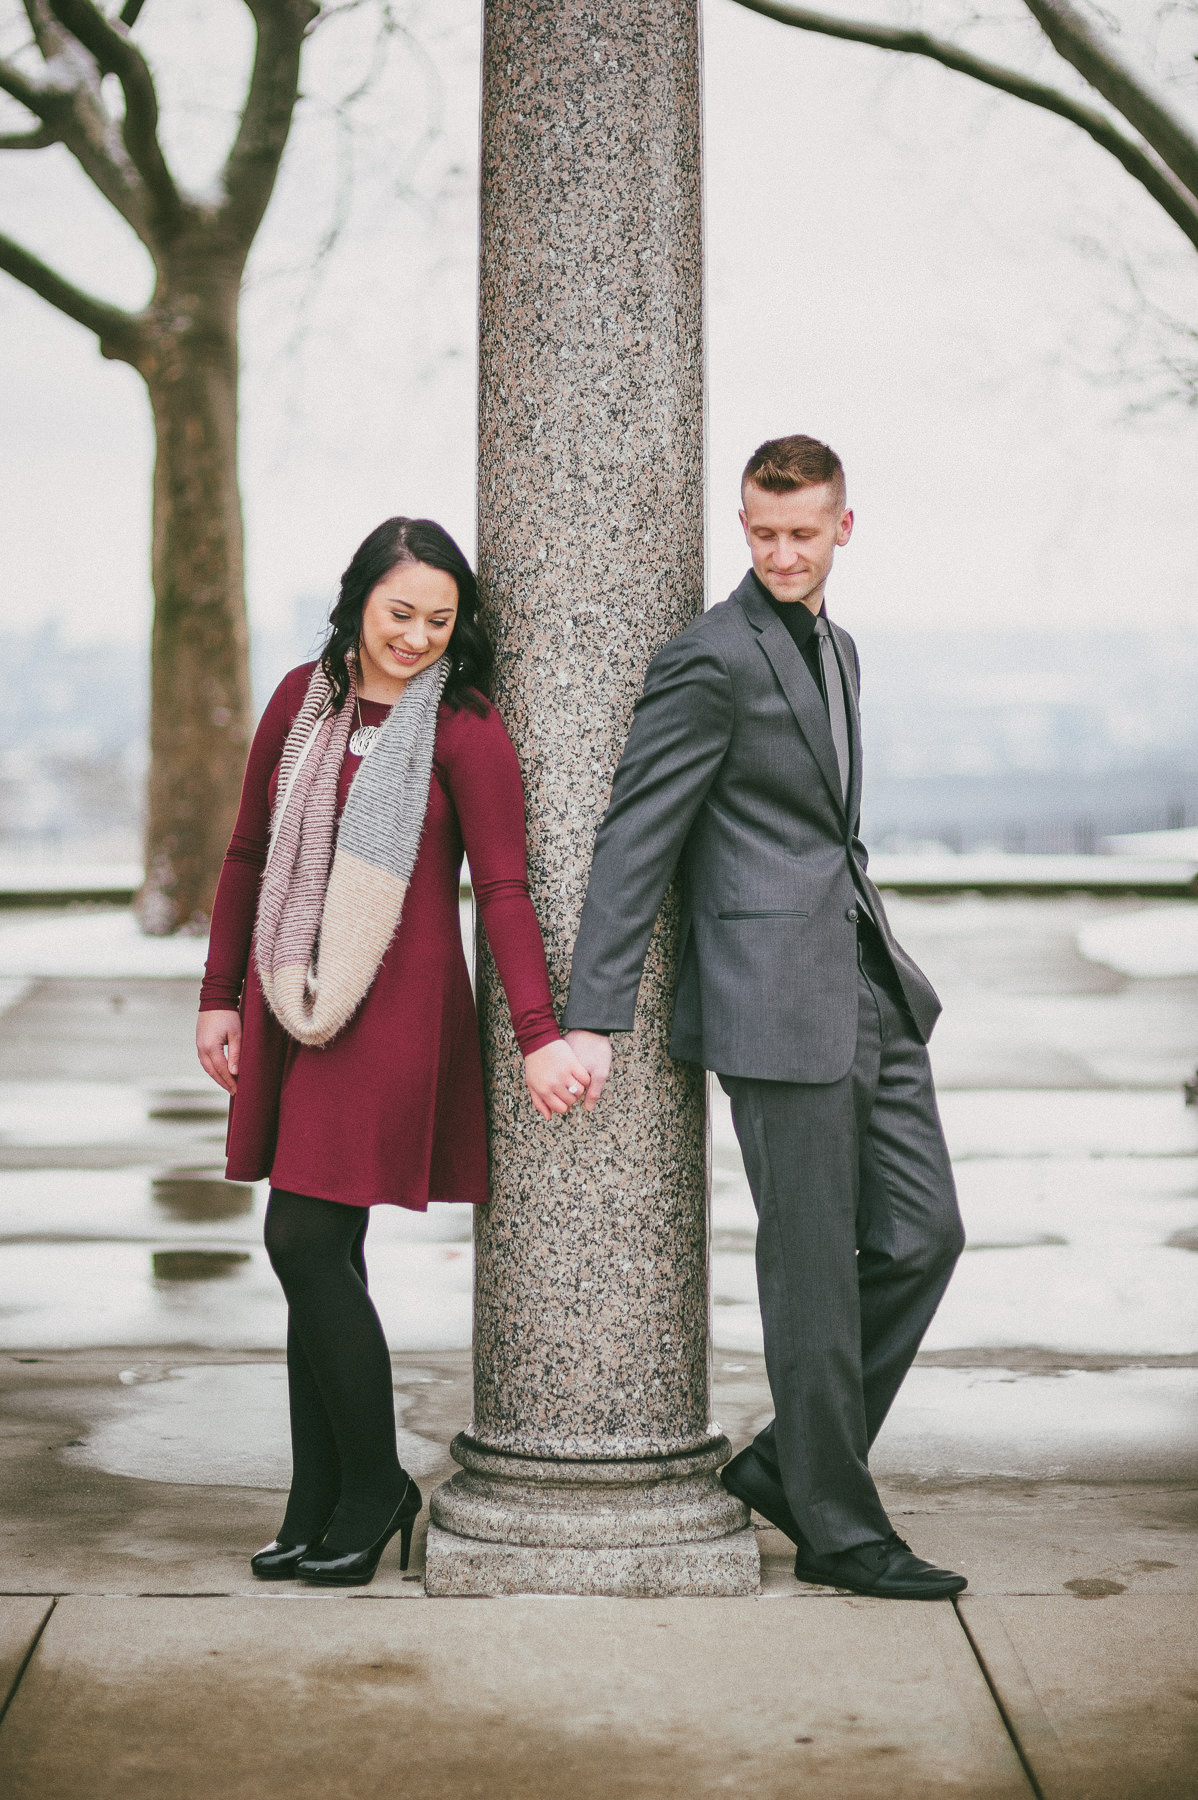 breighton-and-basette-photography-copyrighted-image-blog-abigail-and-ryne-engagement-020.jpg